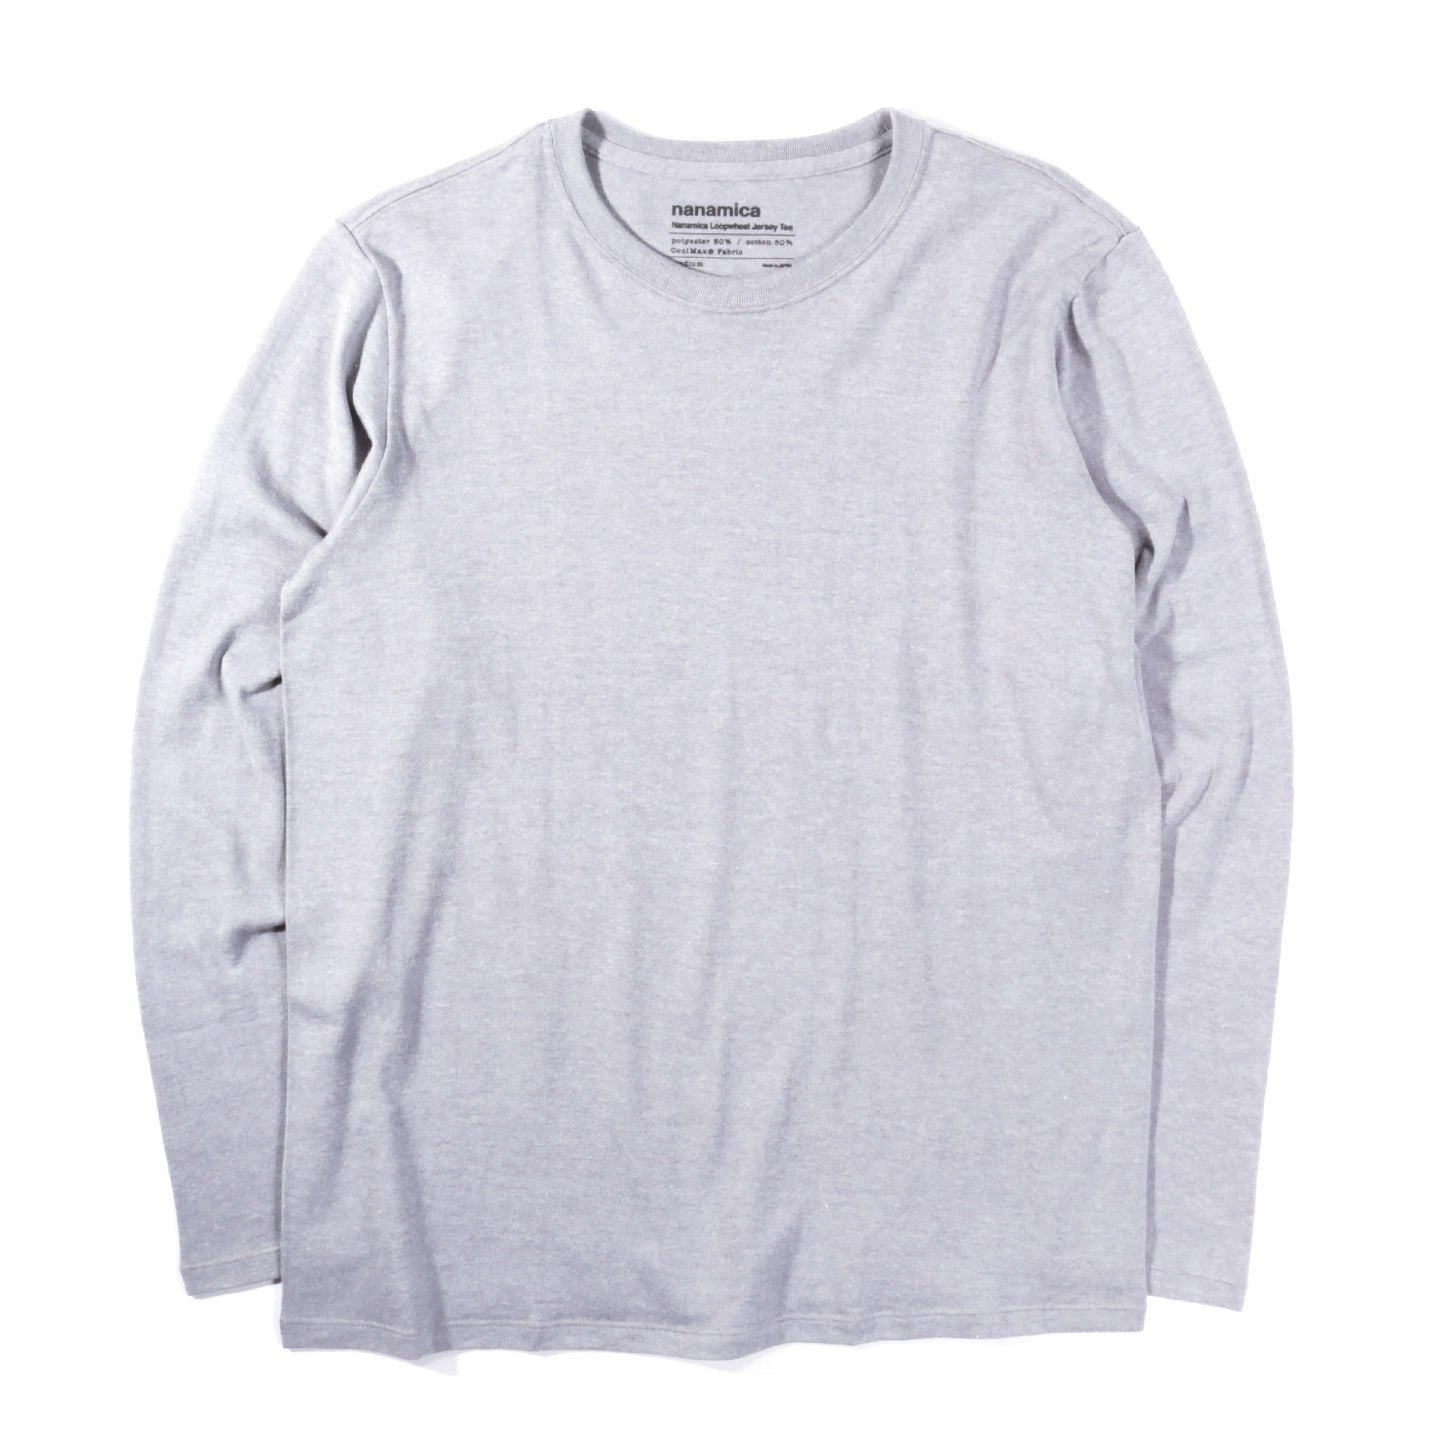 NANAMICA LOOPWHEEL COOLMAX JERSEY L/S TEE HEATHER GREY